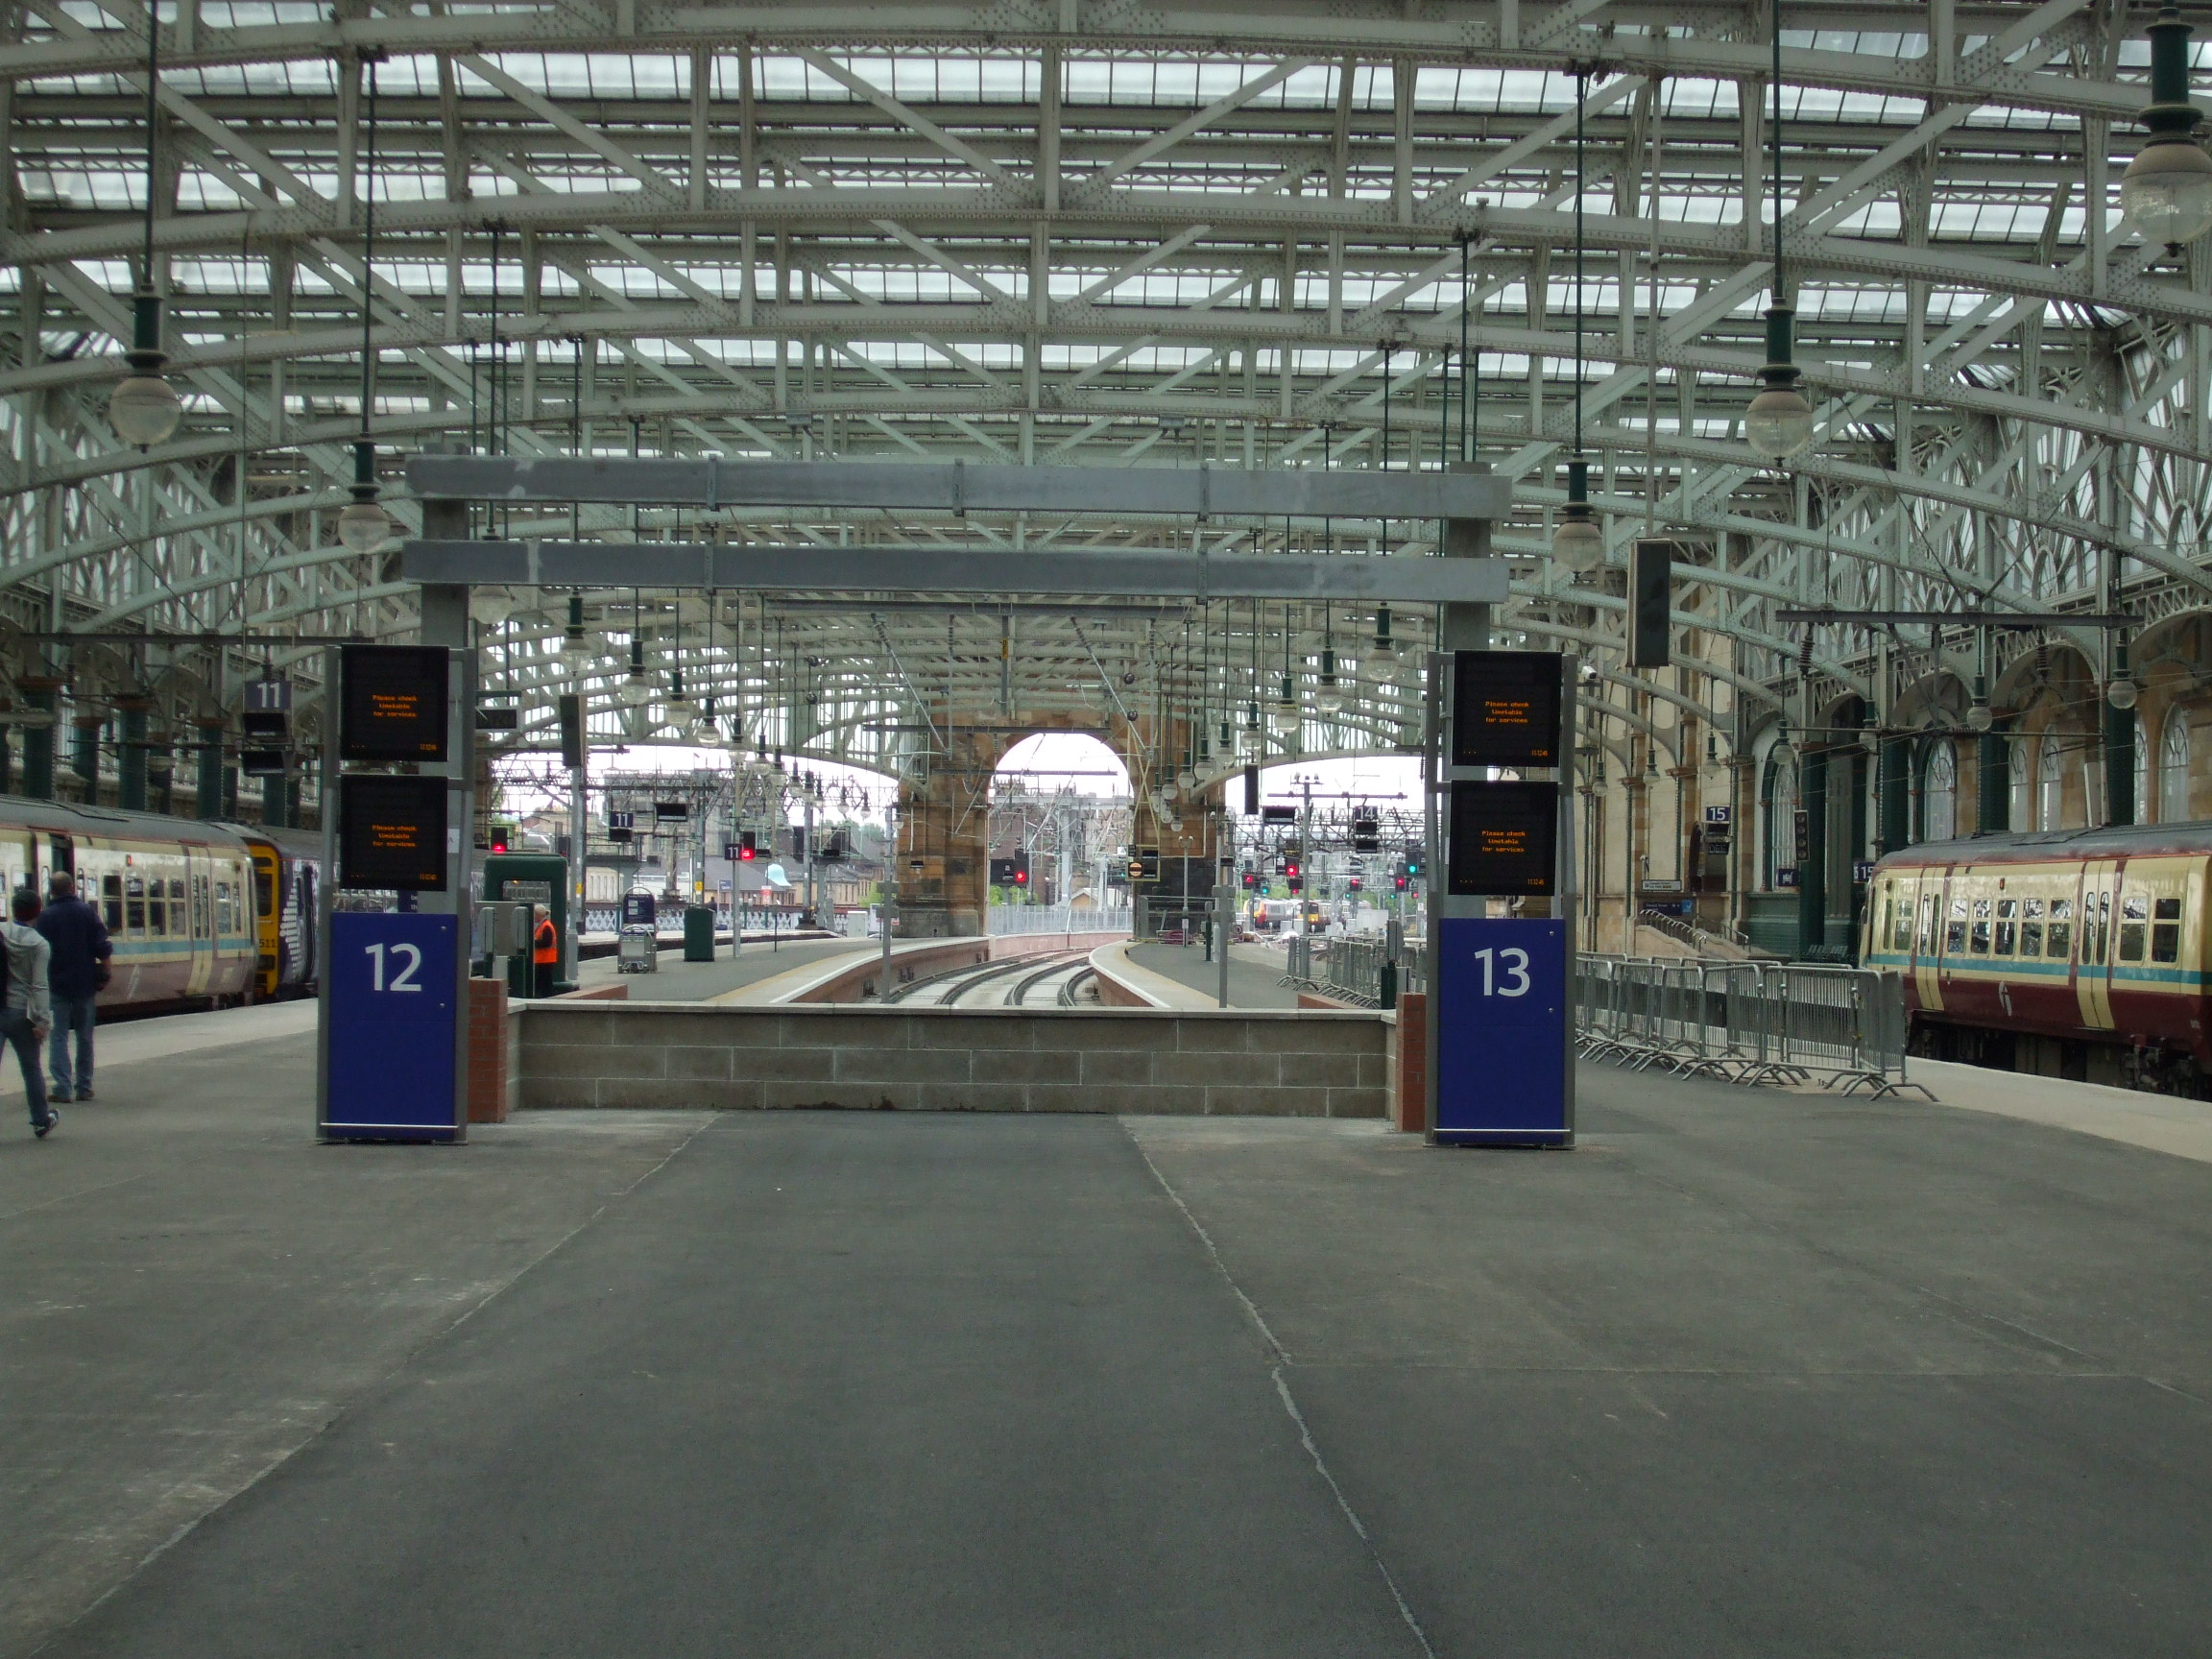 Is There Car Parking At Glasgow Central Station